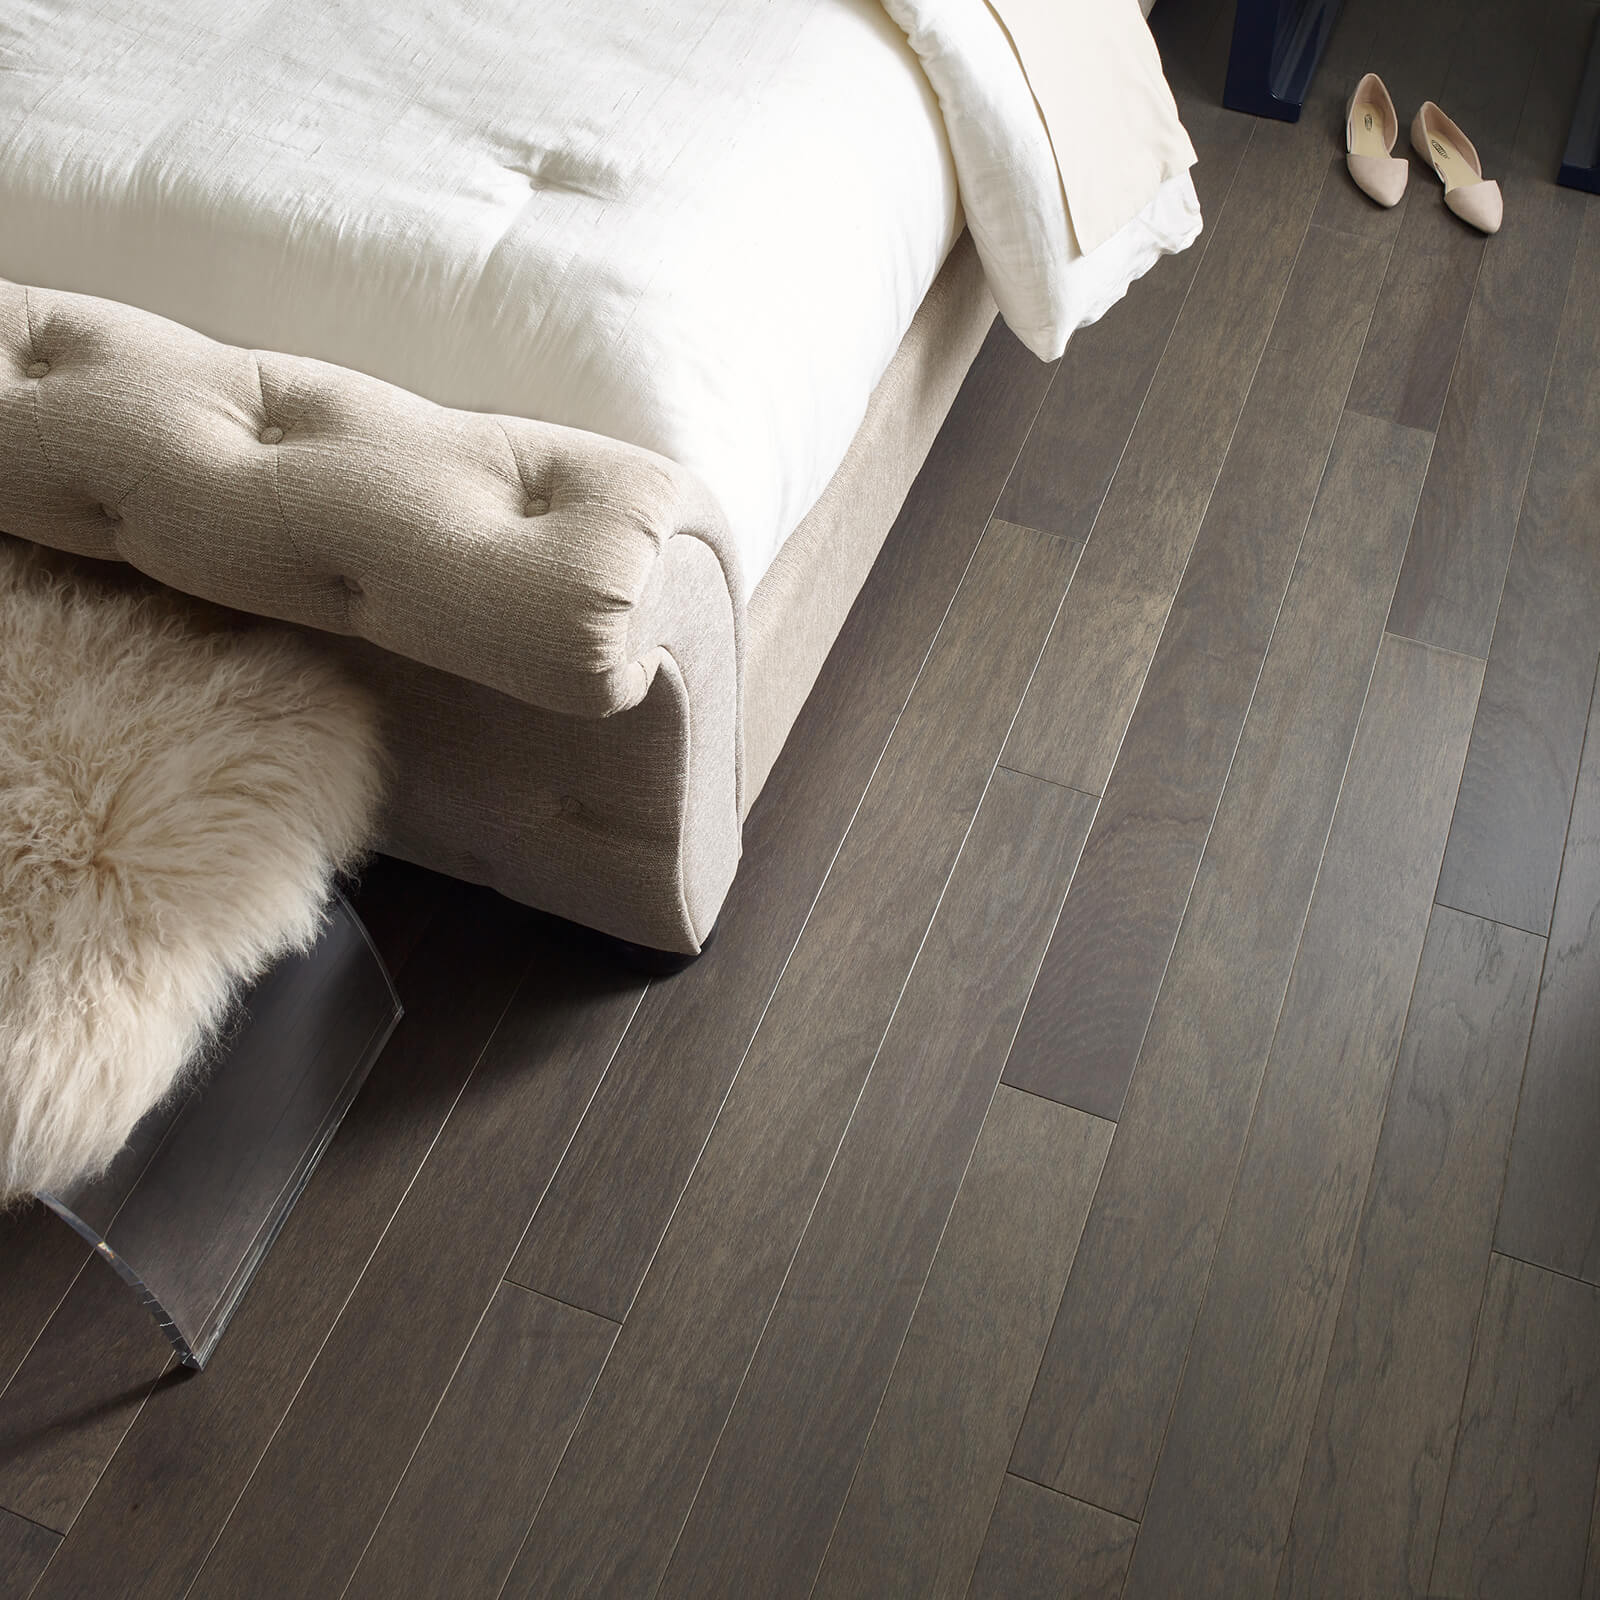 Northington smooth flooring | Great Floors